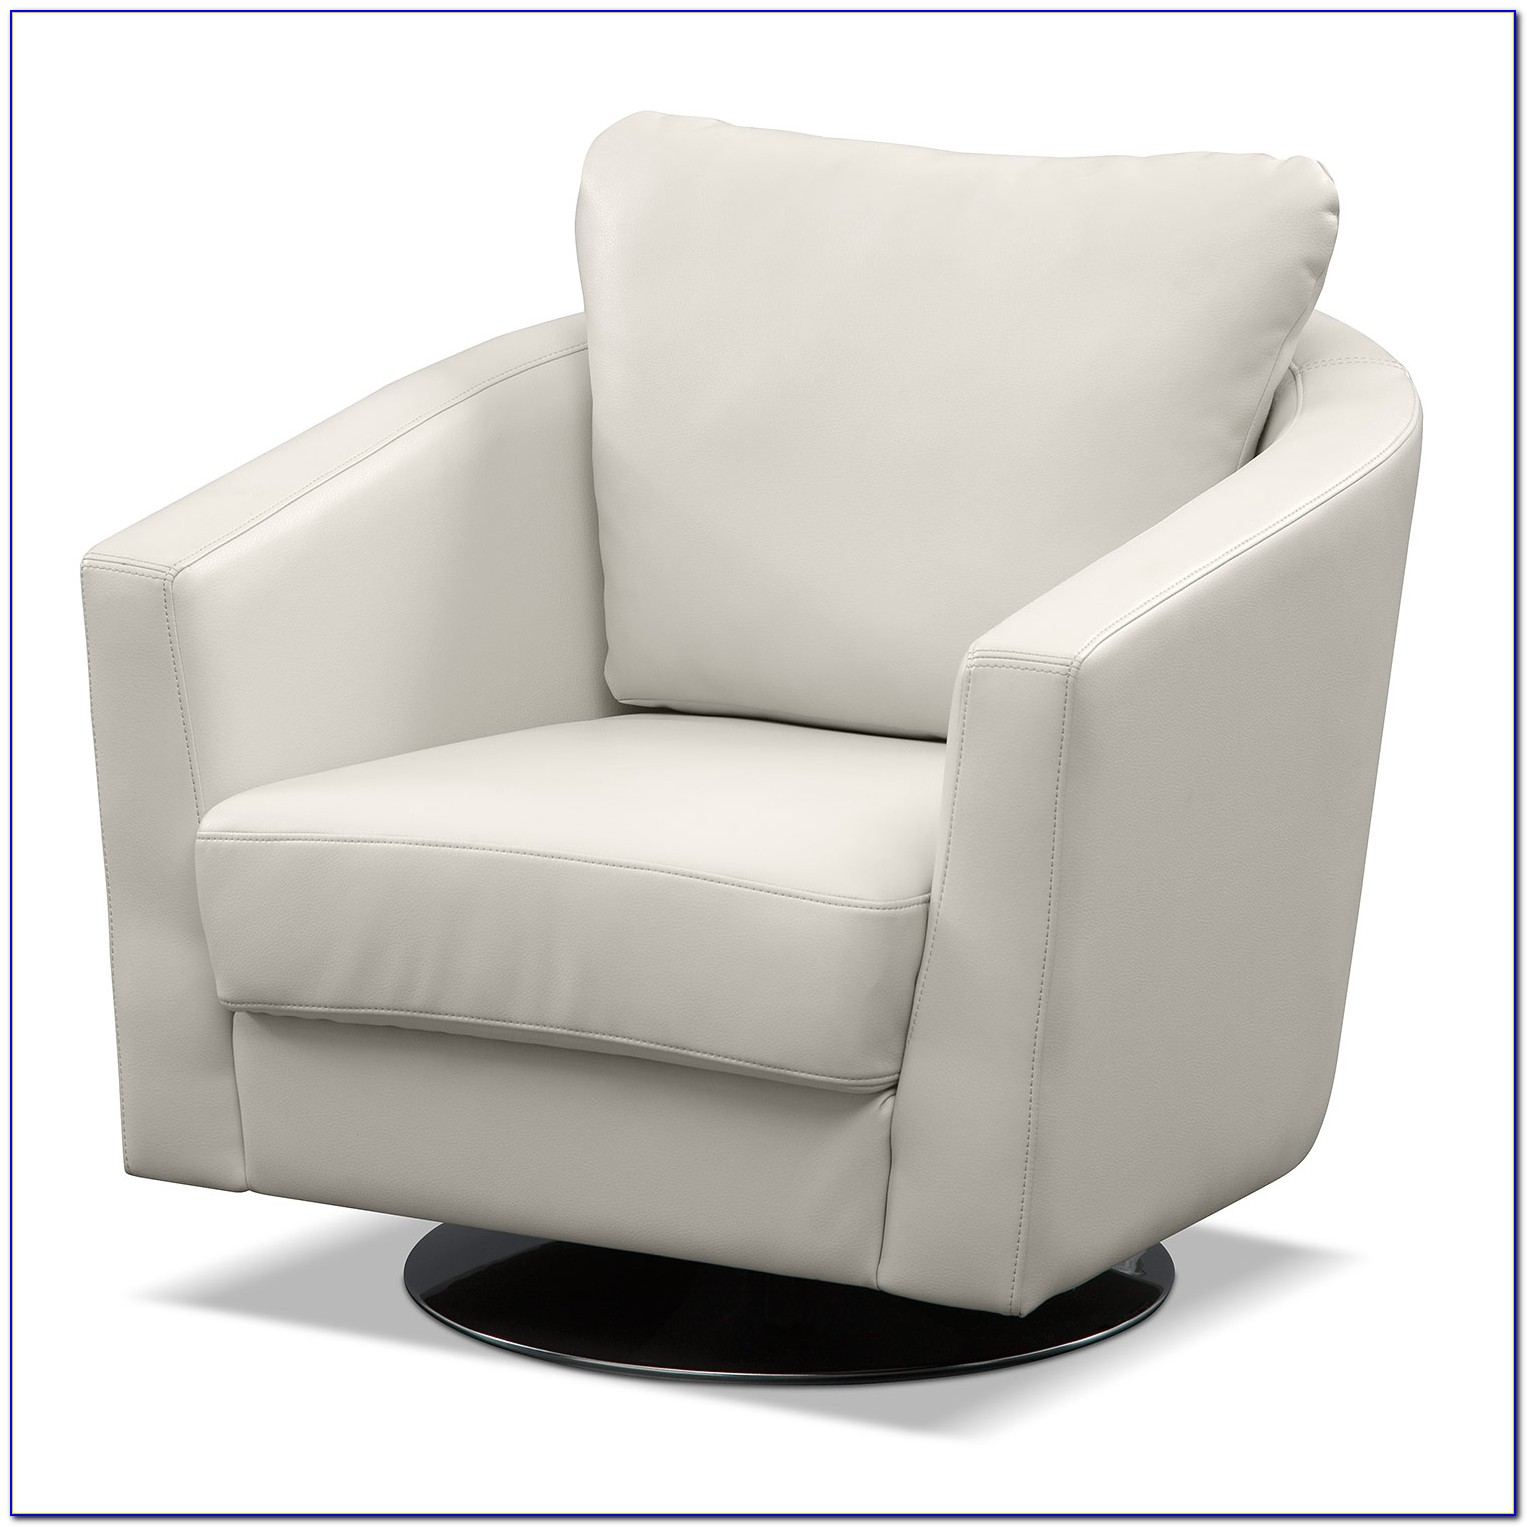 Swivel Chairs For Living Room Australia